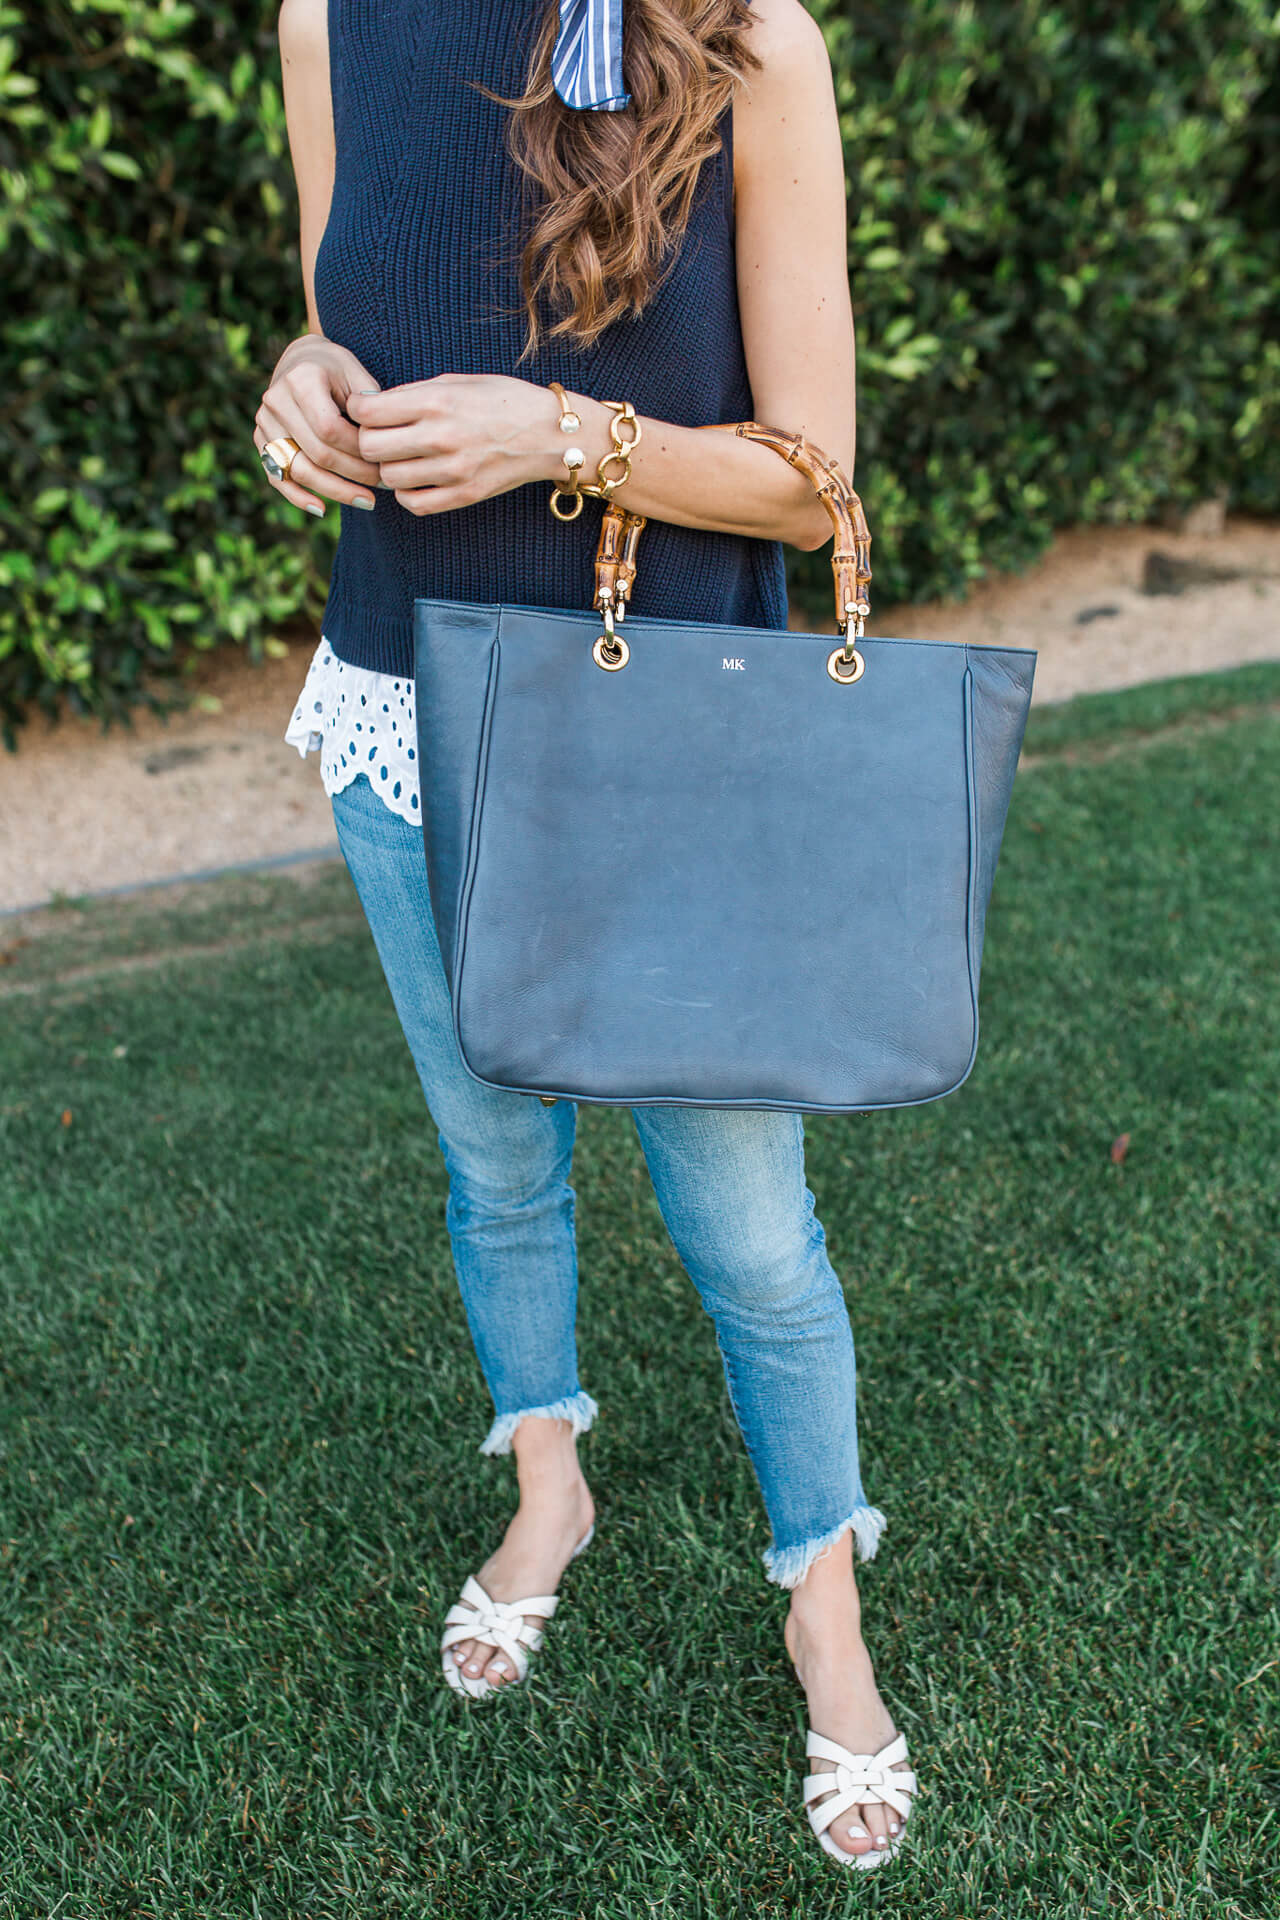 This black leather tote bag is one of my work style must haves! | M Loves M @marmar